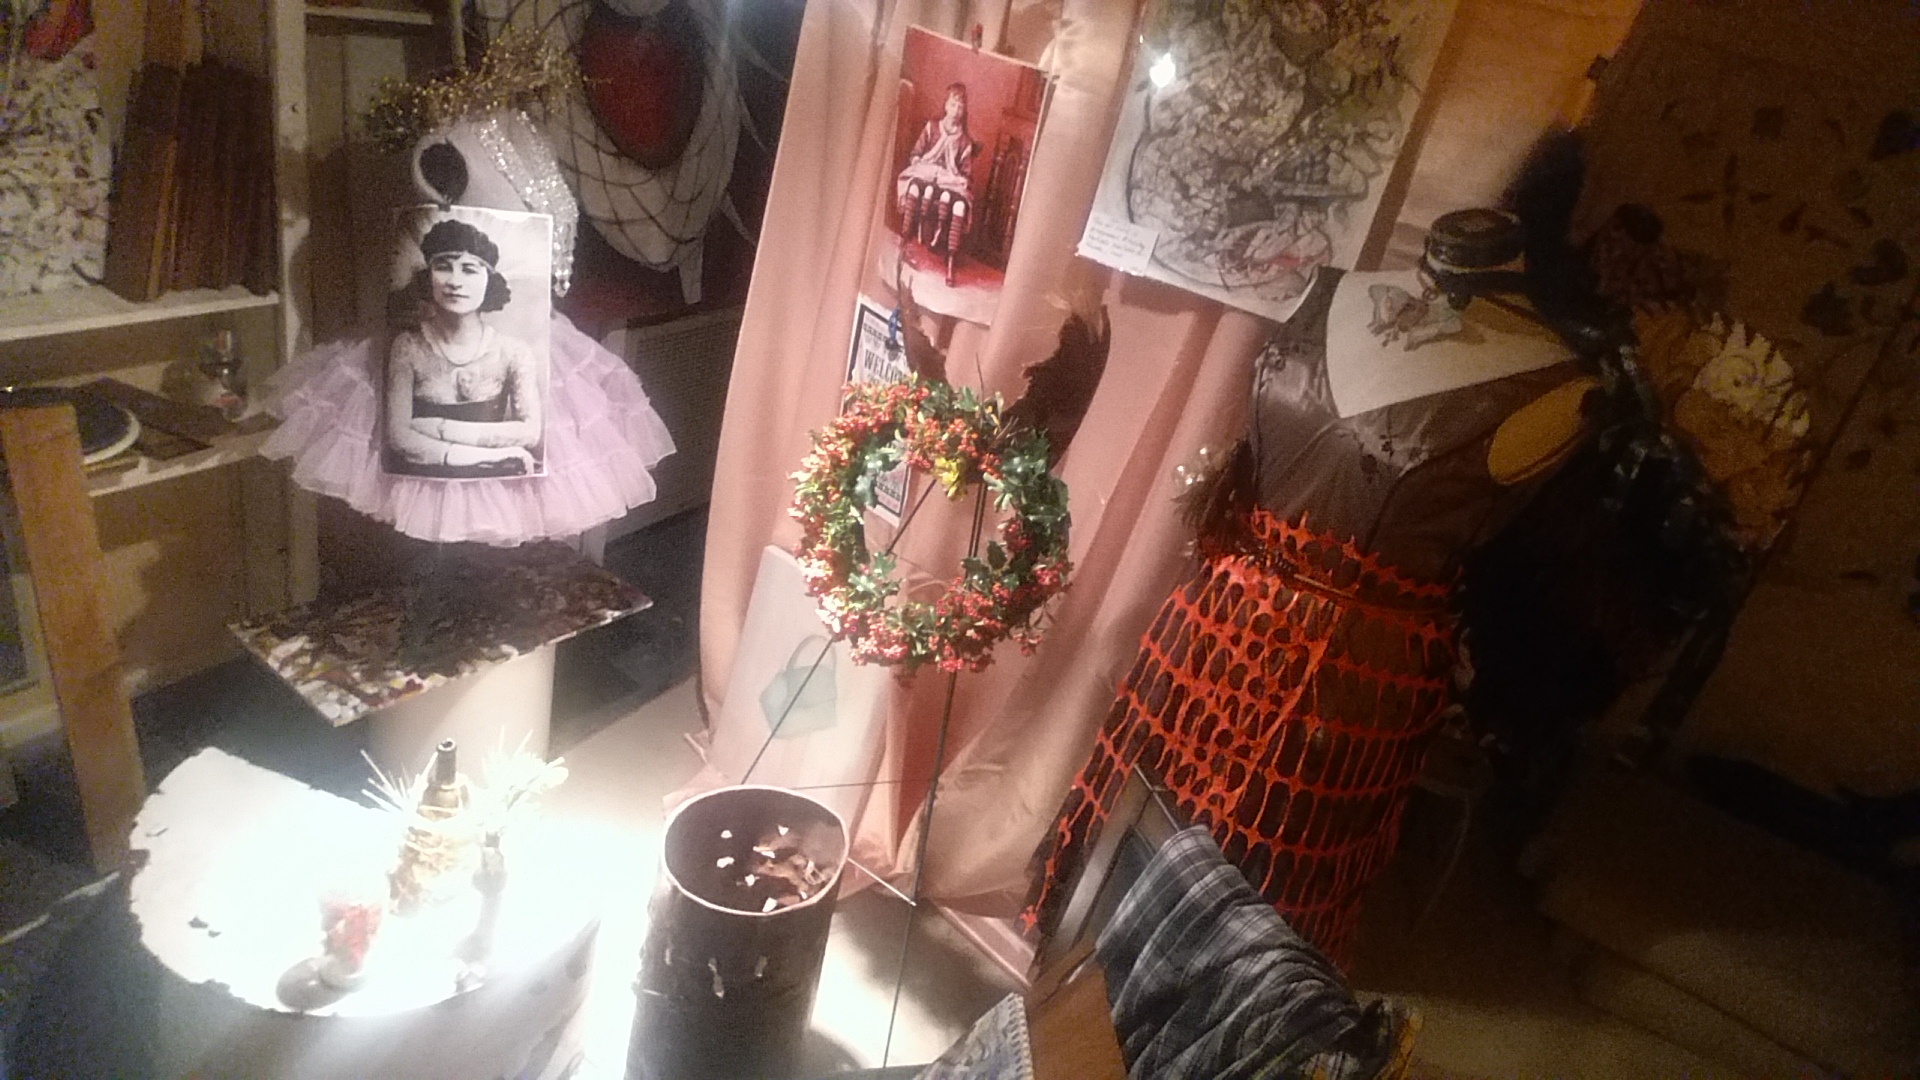 "An #AvasCostumeShop approach to #FantasyFloral #Props & #Floral #PropShop for #Halloween. Branded #PaintersHouse #HauntCouture #CivicArt #Collections. Instagram pic below shows ""Front of House"" costume #designthinking for a variety of functions."